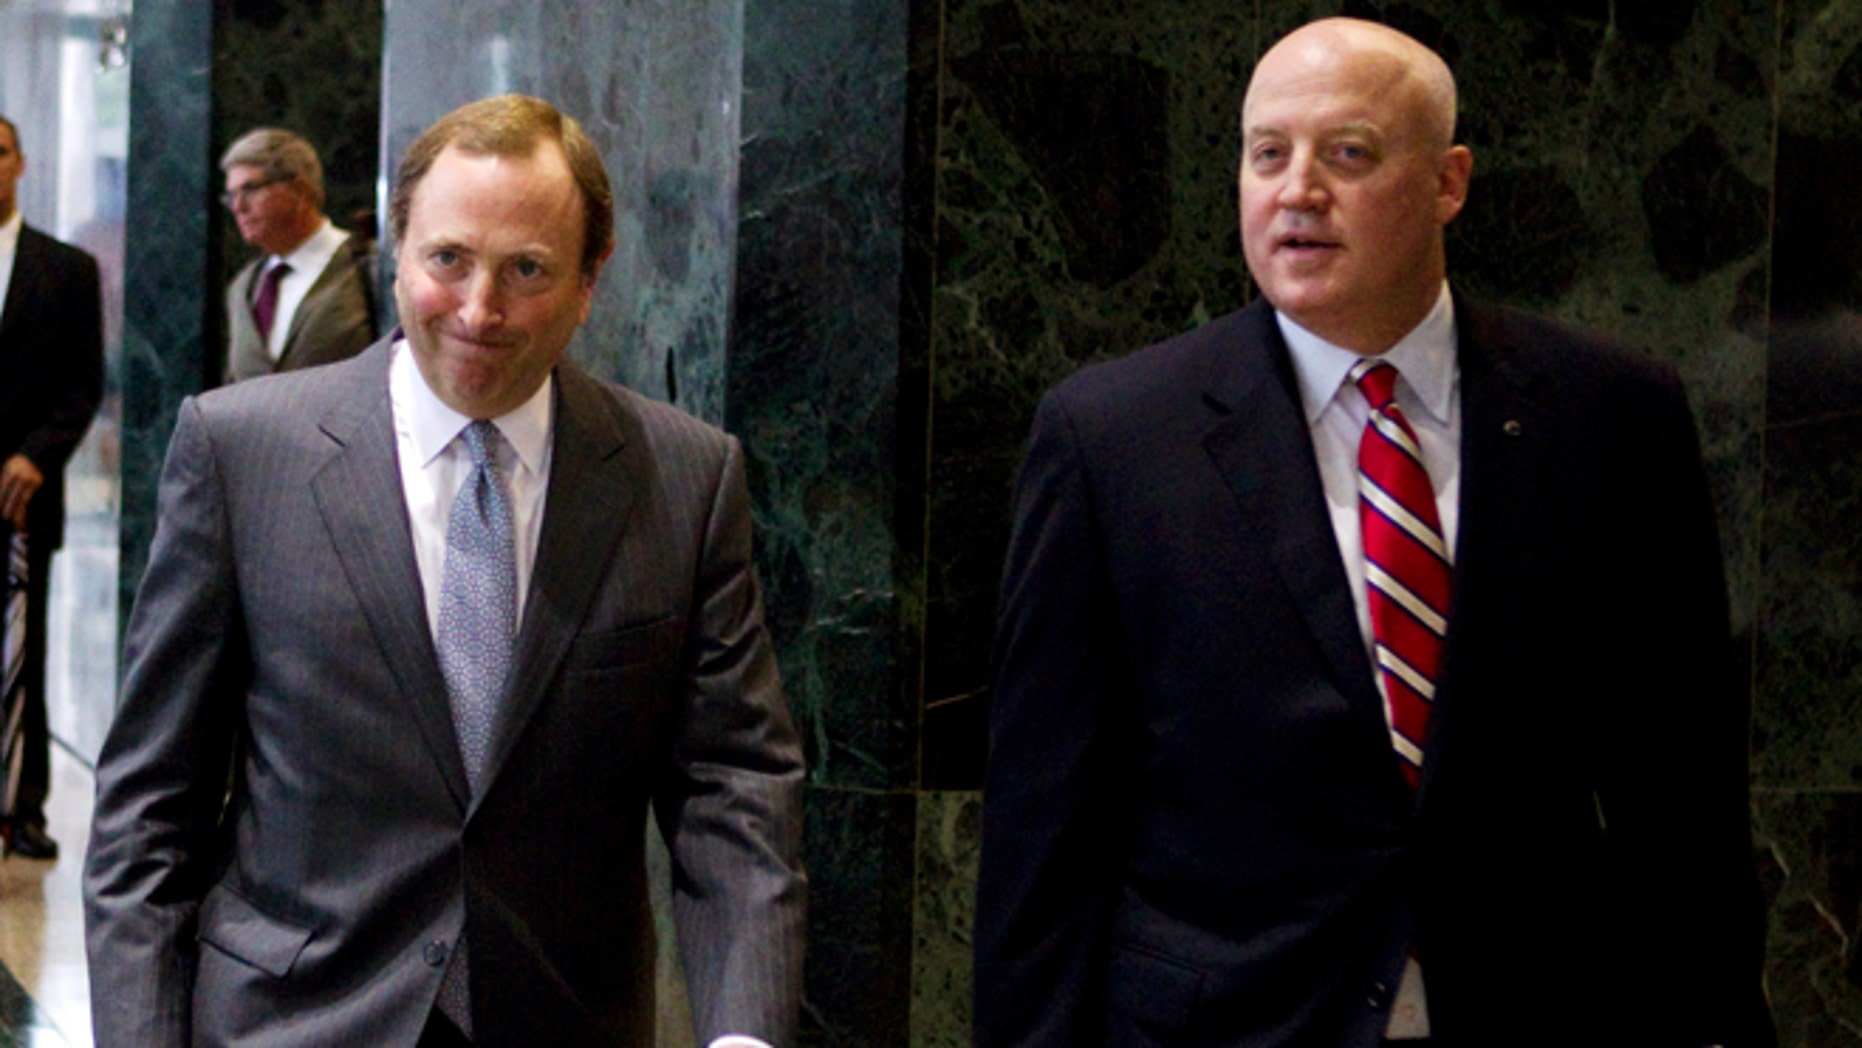 Aug. 14, 2012: This file photo shows NHL commissioner Gary Bettman, left, and Bill Daly, deputy commissioner and chief legal officer, following collective bargaining talks in Toronto.